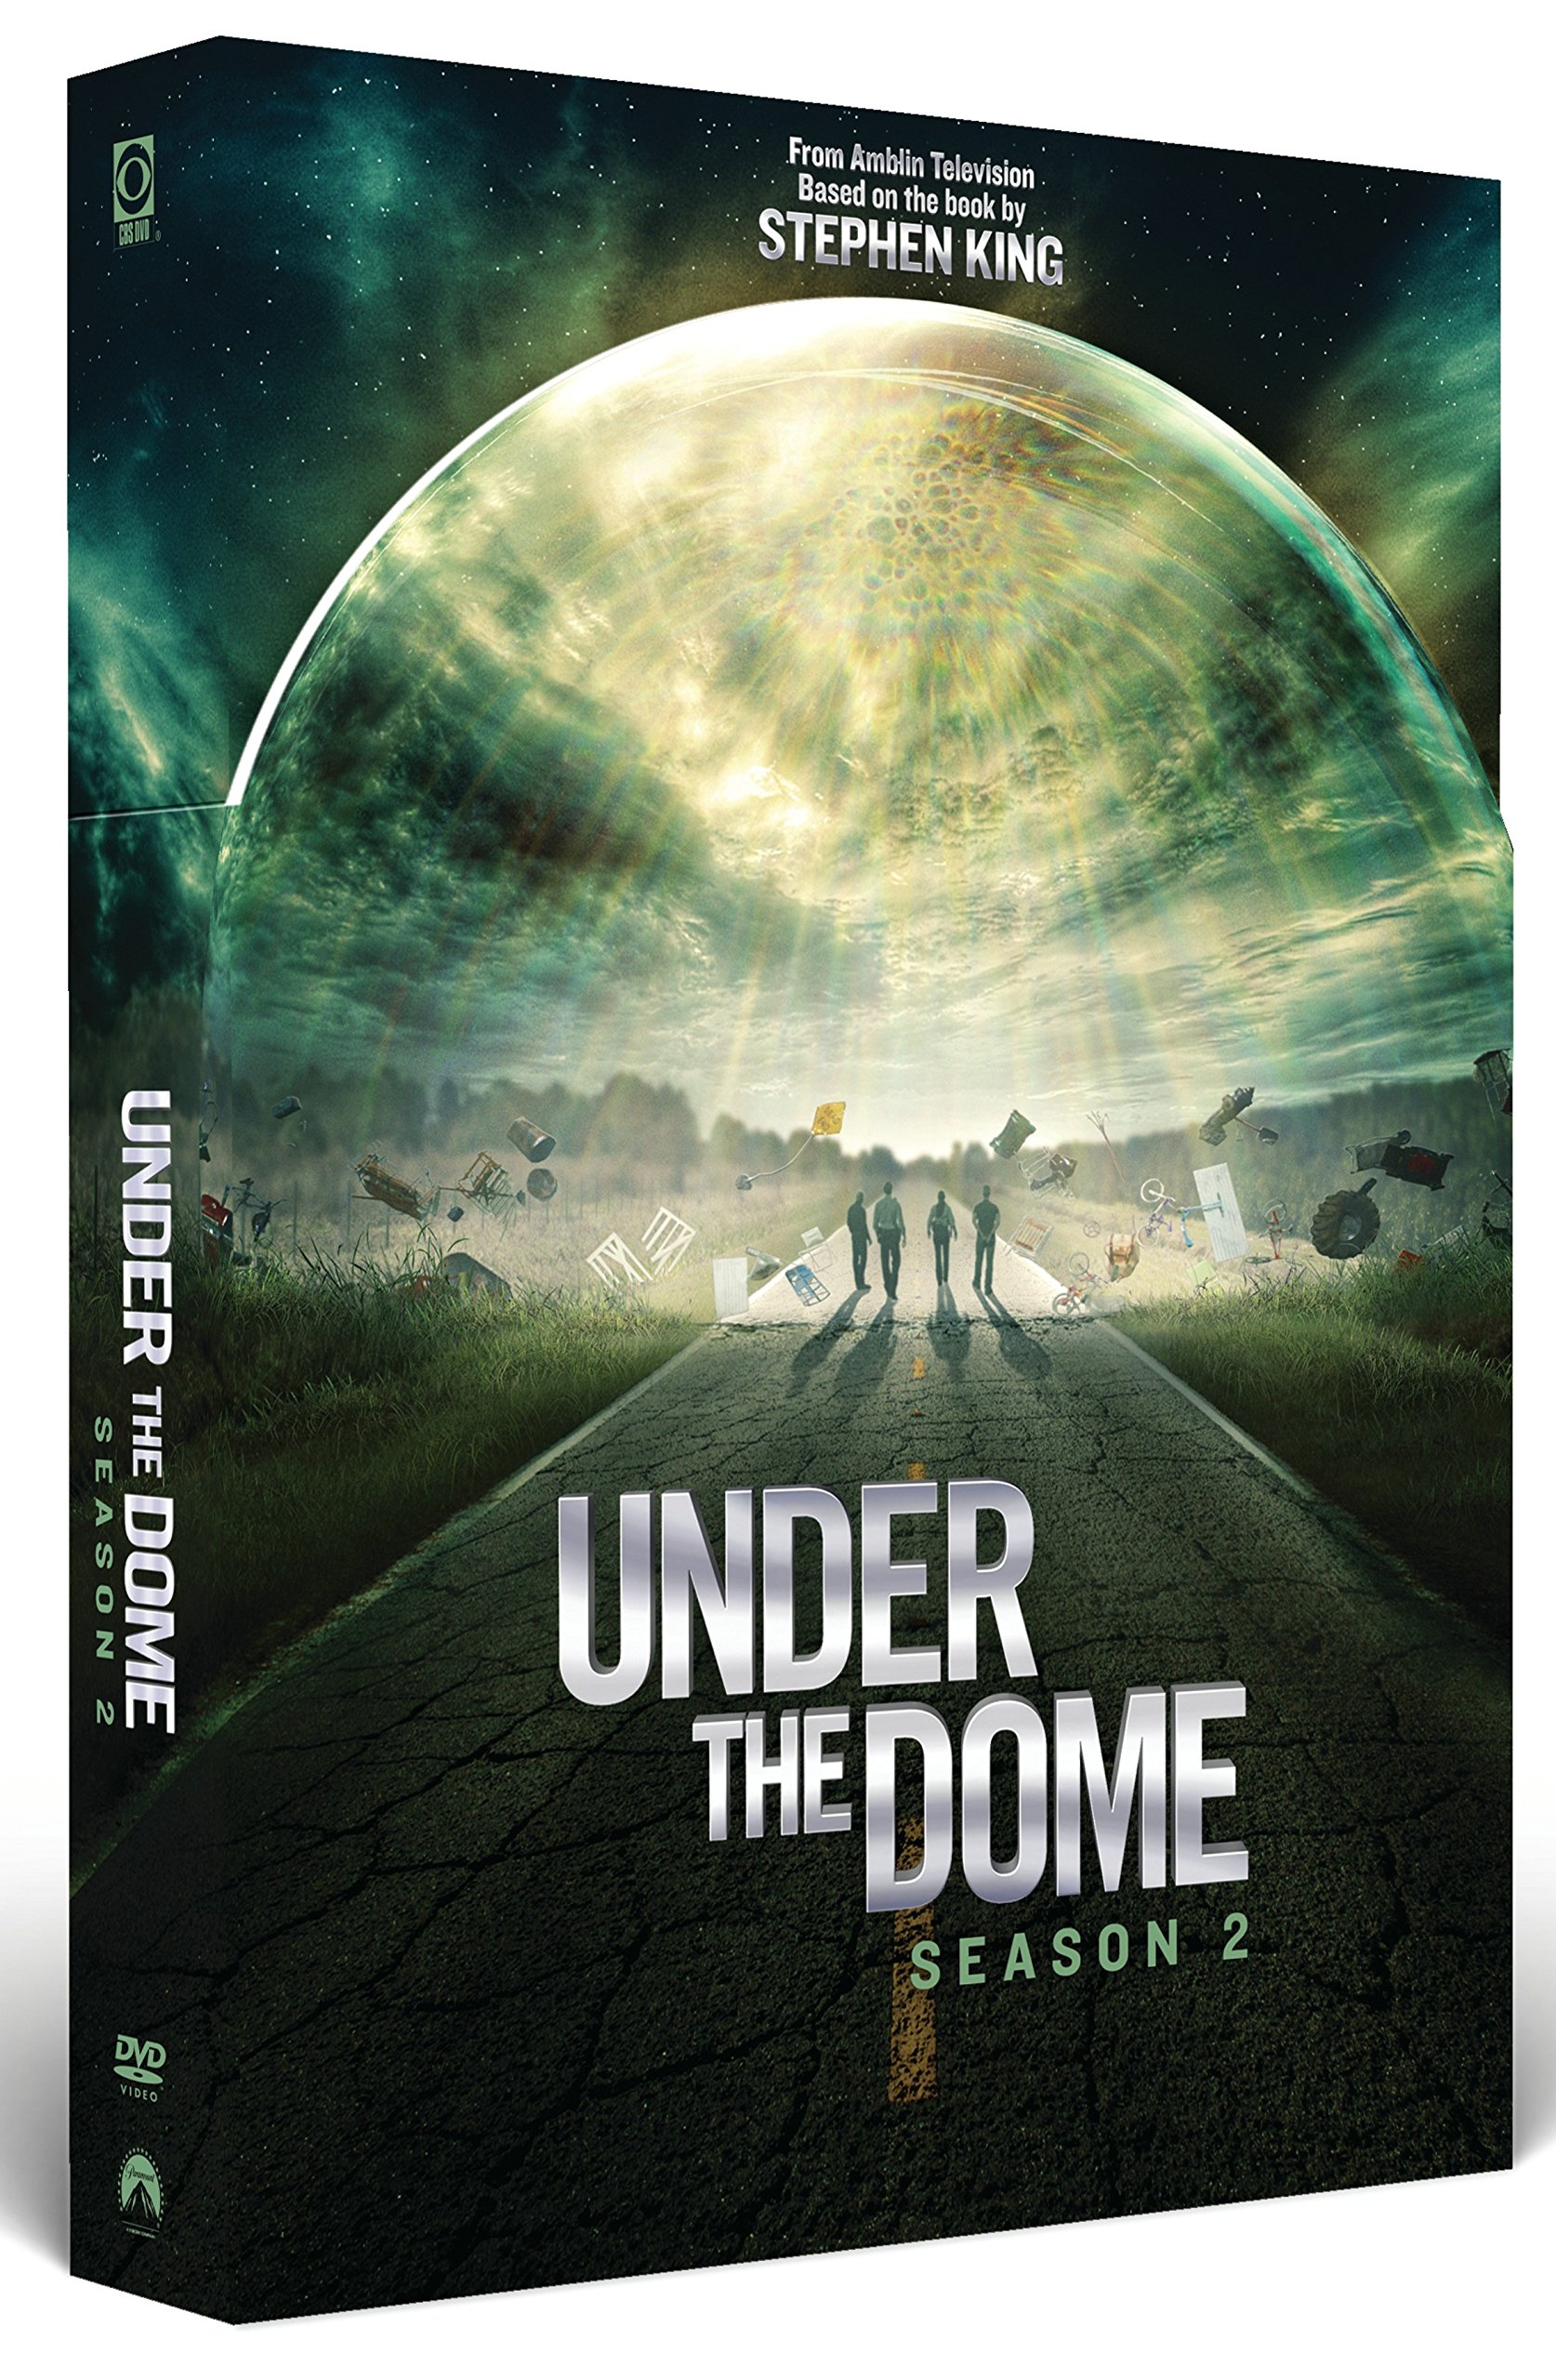 DVD : Under the Dome: Season Two (Boxed Set, Widescreen, Digipack Packaging, Slipsleeve Packaging, Digital Theater System)